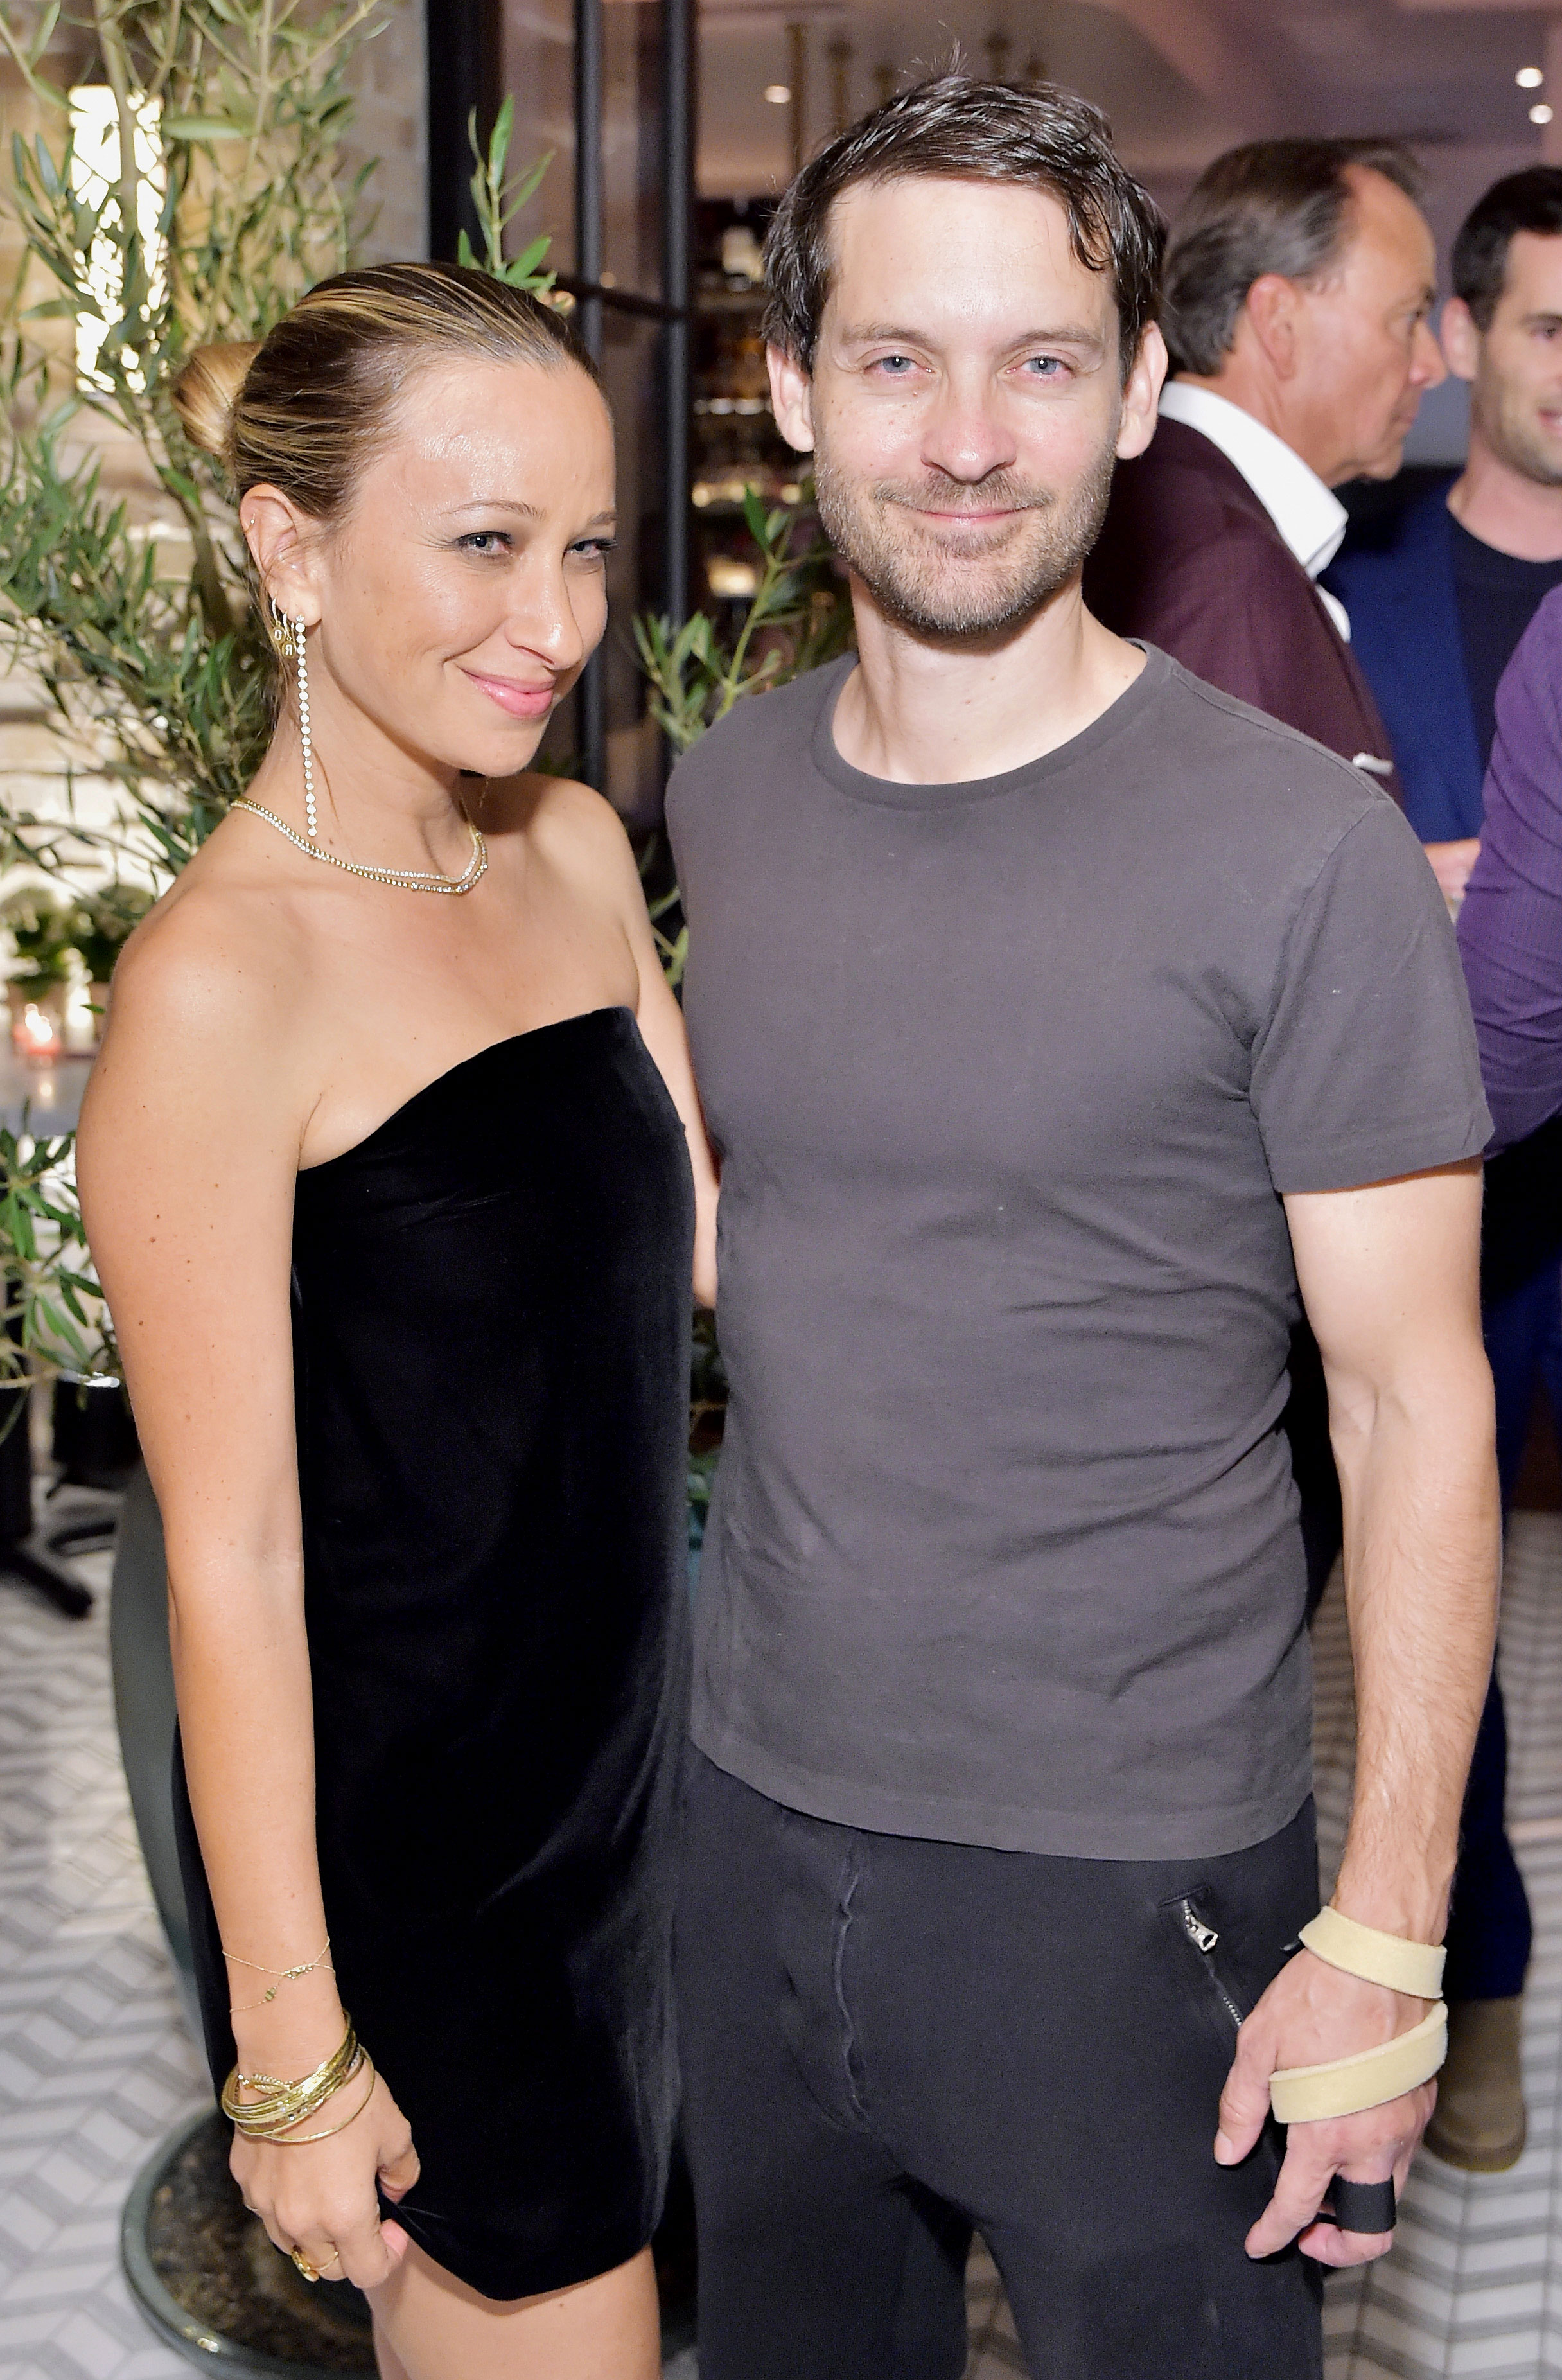 Jennifer Meyer: There's 'Nothing Better in My Life' Than My Kids - Jennifer Meyer and Tobey Maguire celebrate Jennifer's first jewlery store opening on October 17, 2018 in Pacific Palisades, California.